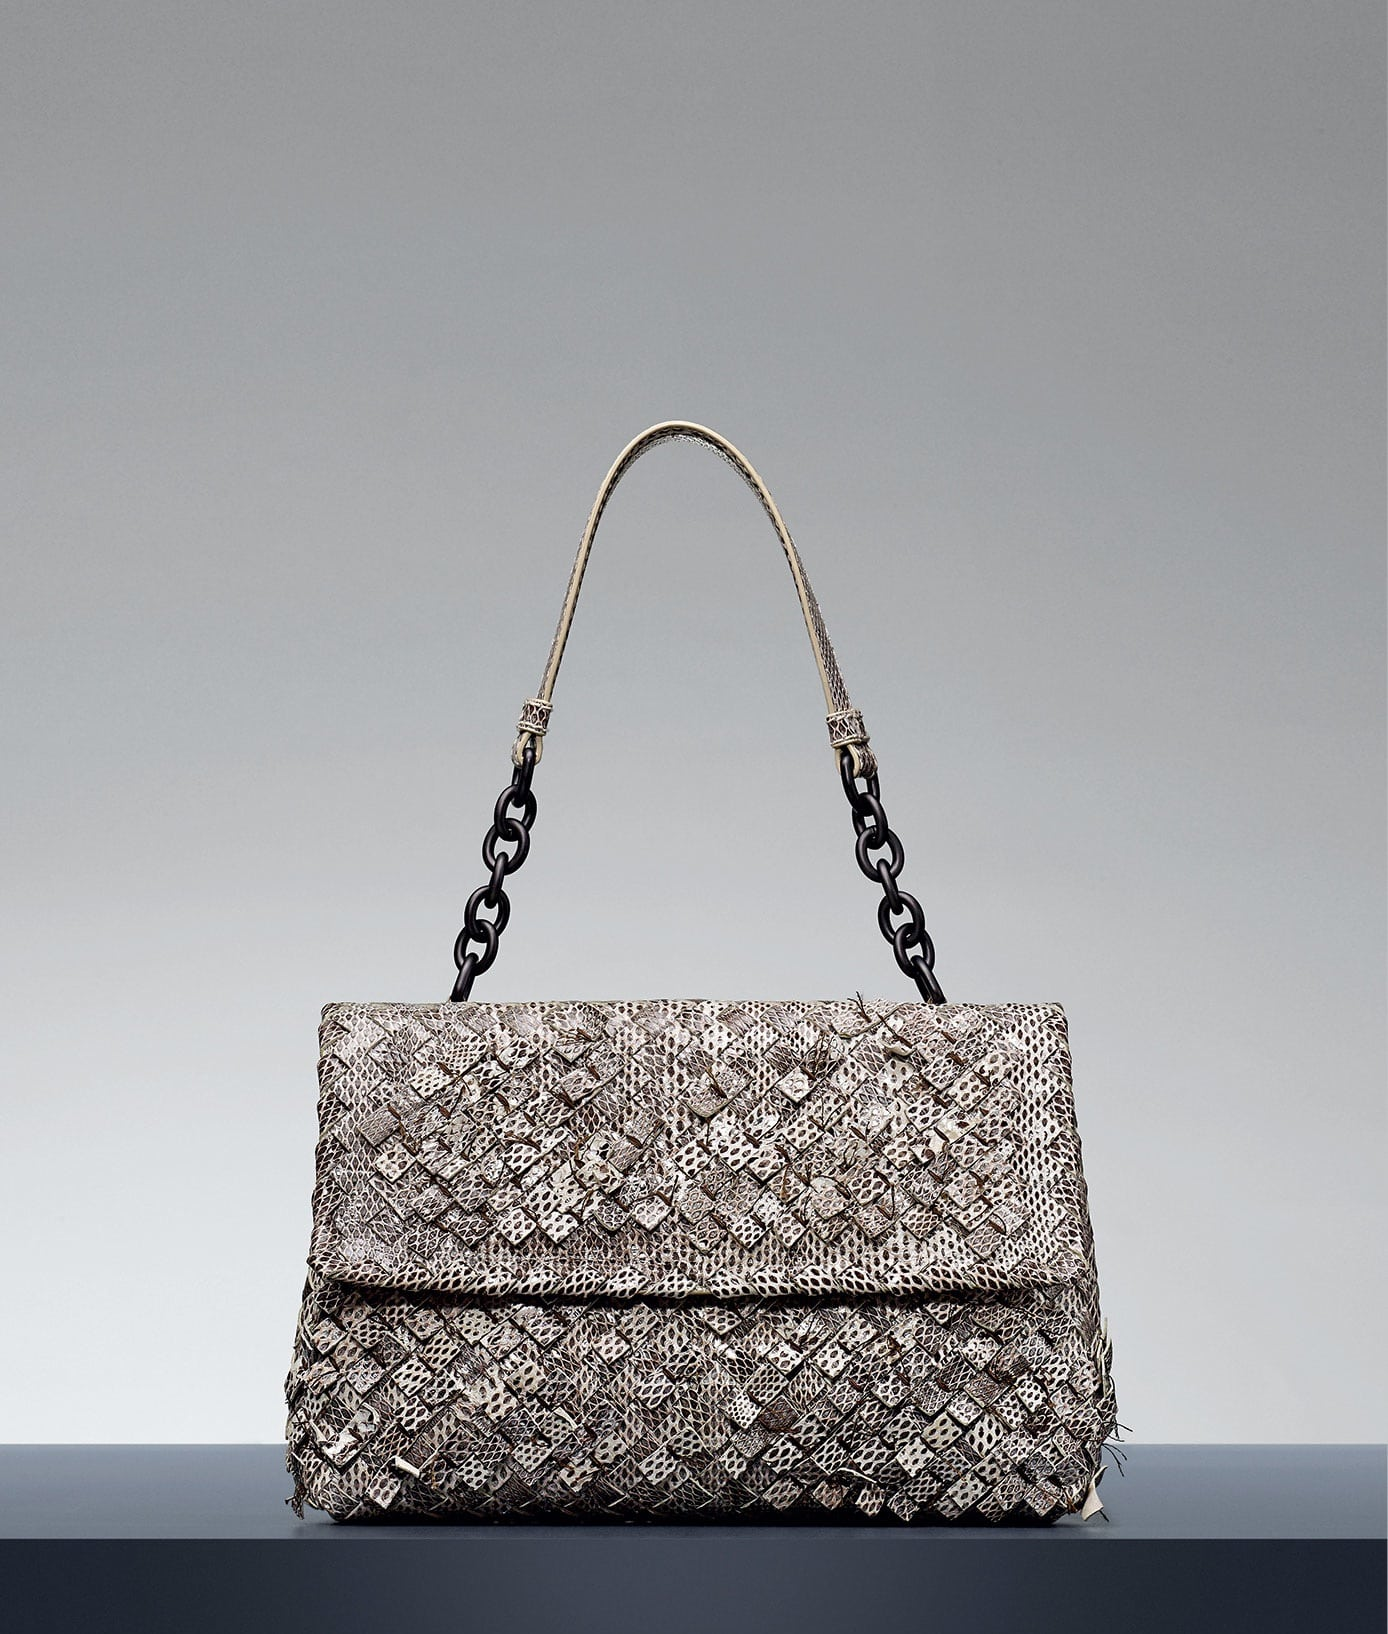 Bottega Veneta Mist Intreccio Tobu Ayers Olimpia Bag - Pre-Fall 2014 cbcdded37beef